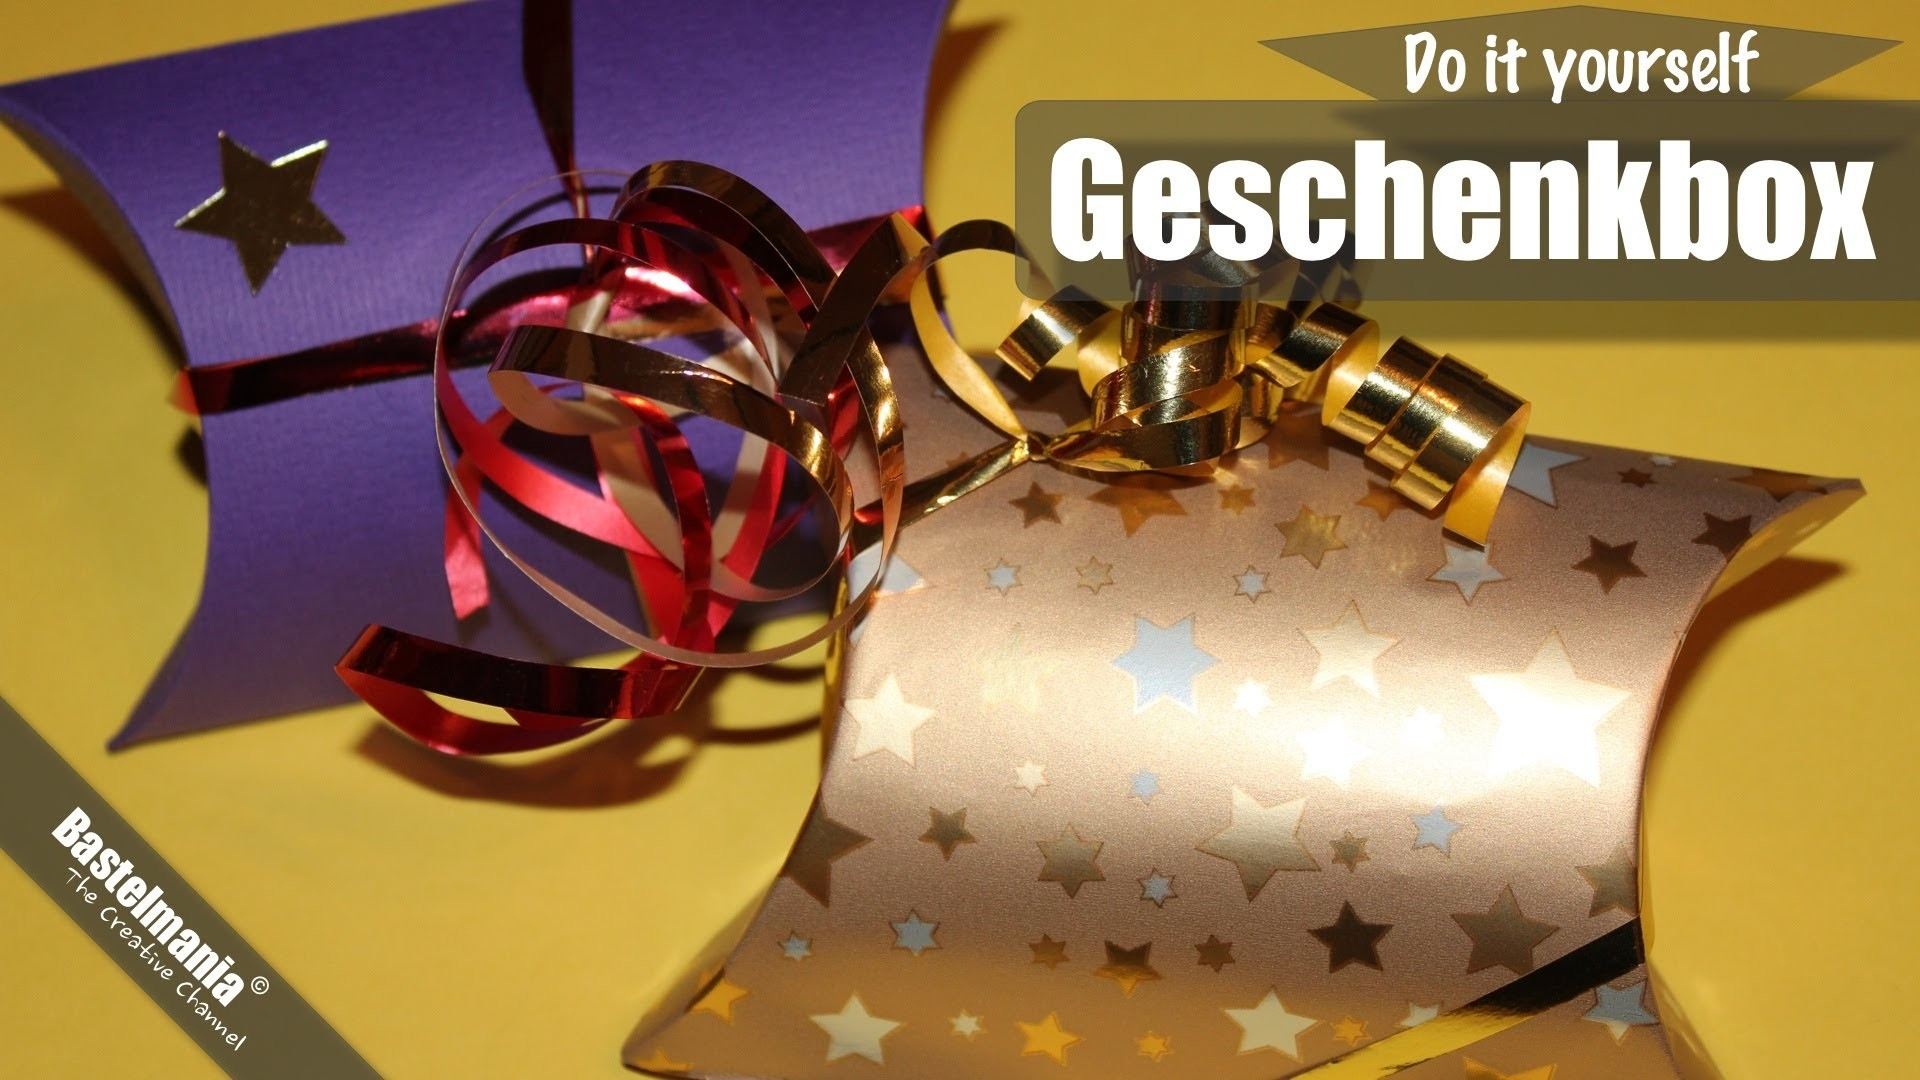 Geschenkverpackung Basteln. Gift Wrapping. Gift Box Craft